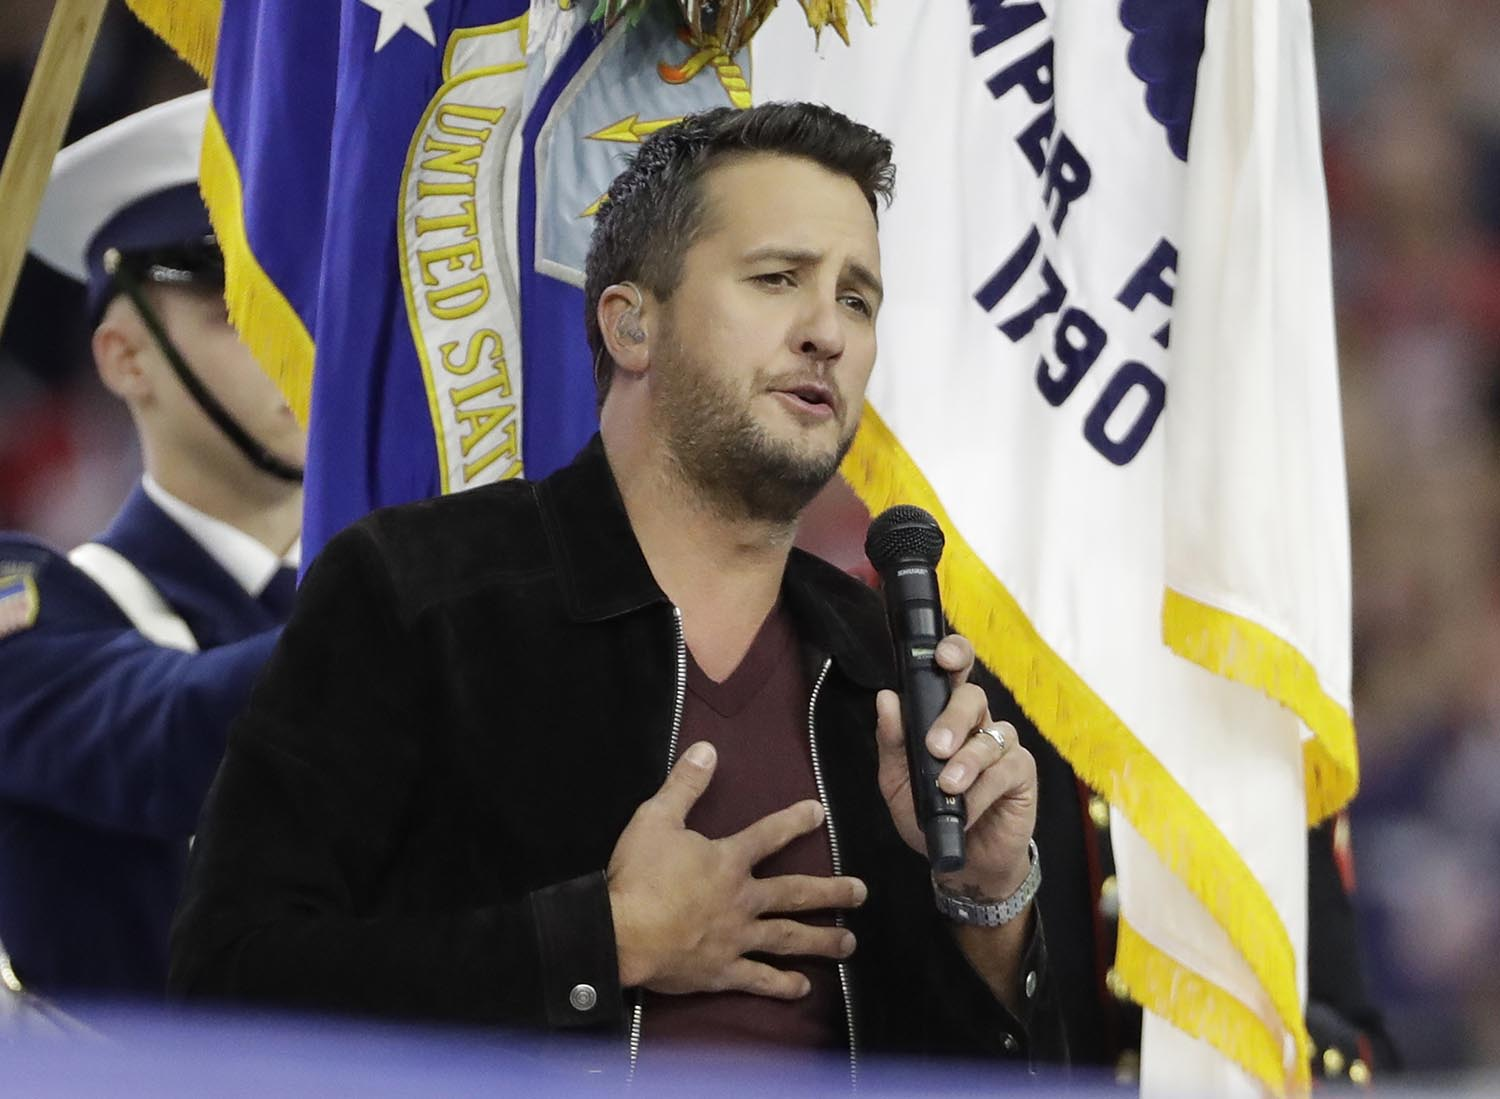 <div class='meta'><div class='origin-logo' data-origin='AP'></div><span class='caption-text' data-credit='AP Photo/David J. Phillip'>2017: Singer Luke Bryan sings the national anthem before the NFL Super Bowl 51 football game between the Atlanta Falcons and the New England Patriots Sunday, Feb. 5, 2017.</span></div>